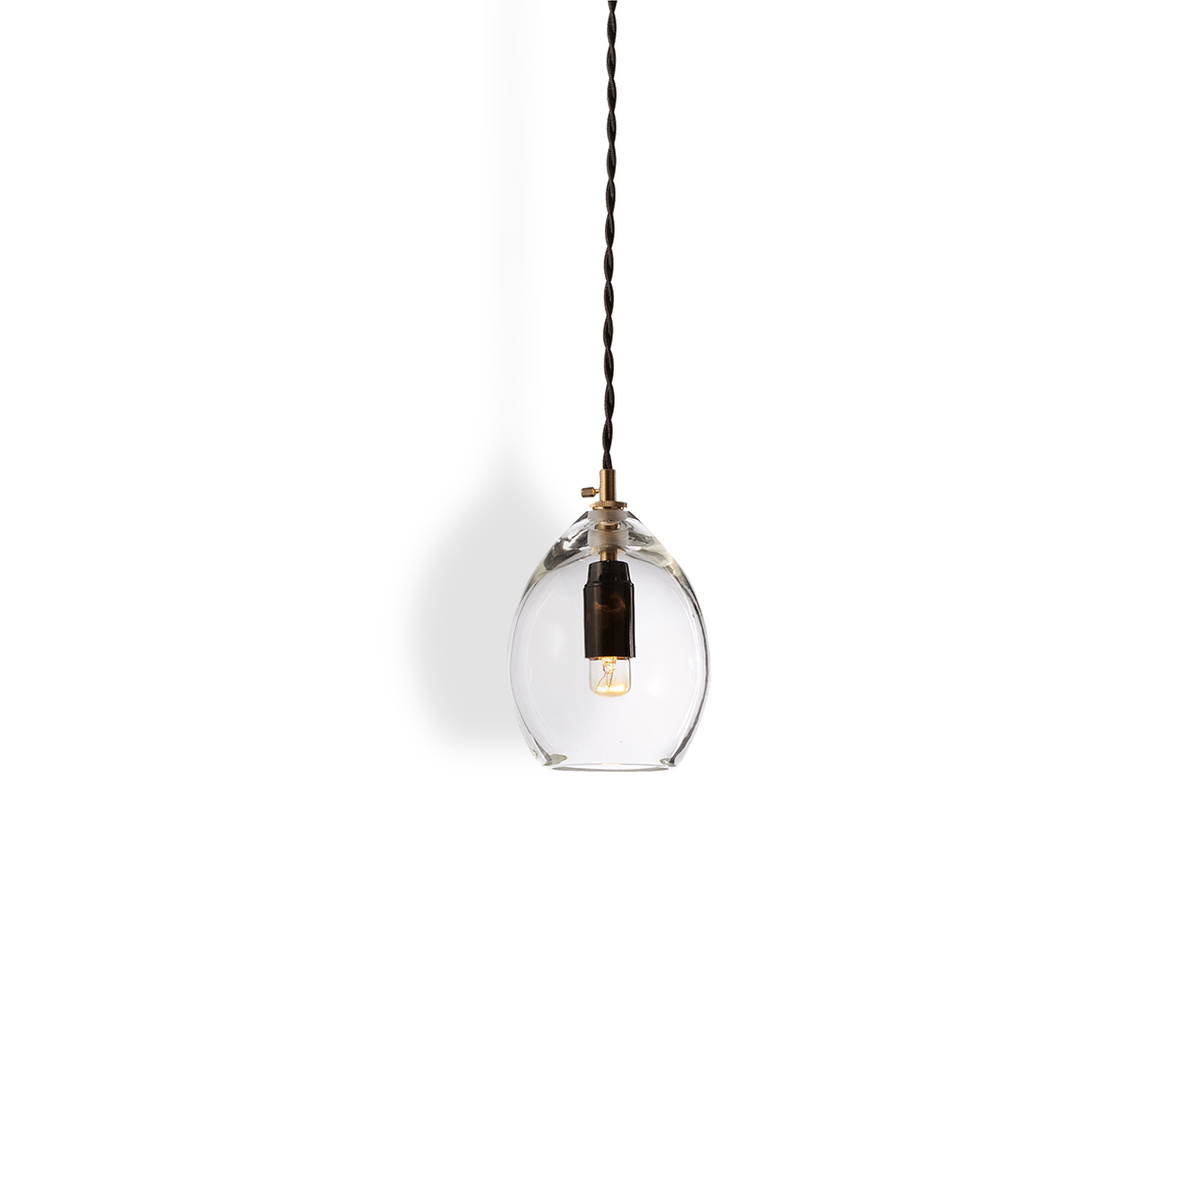 Suspension unika small transparente by northern lighting for Suspension transparente